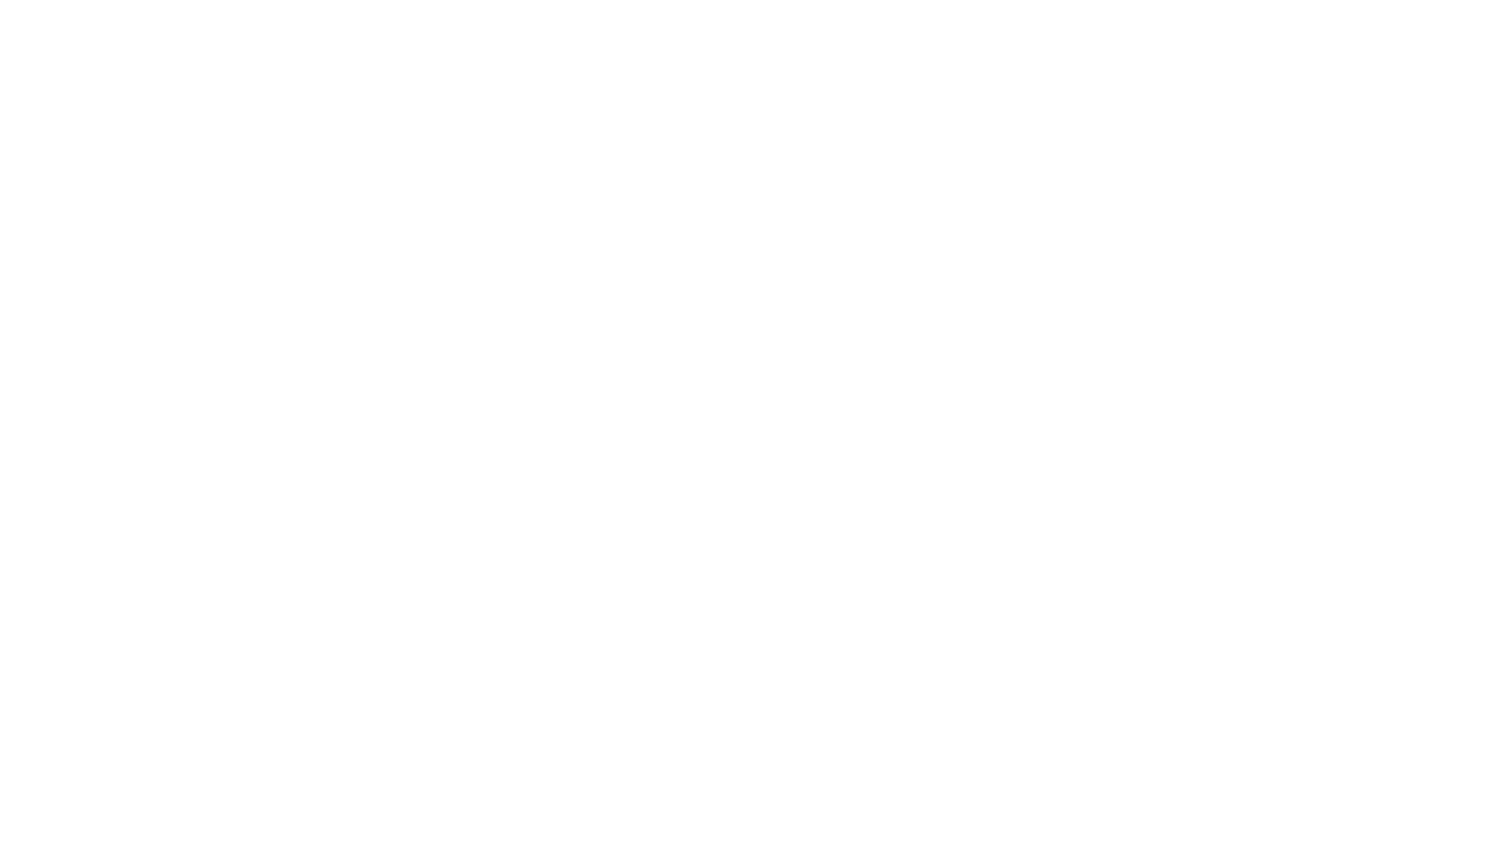 Deja-New Records